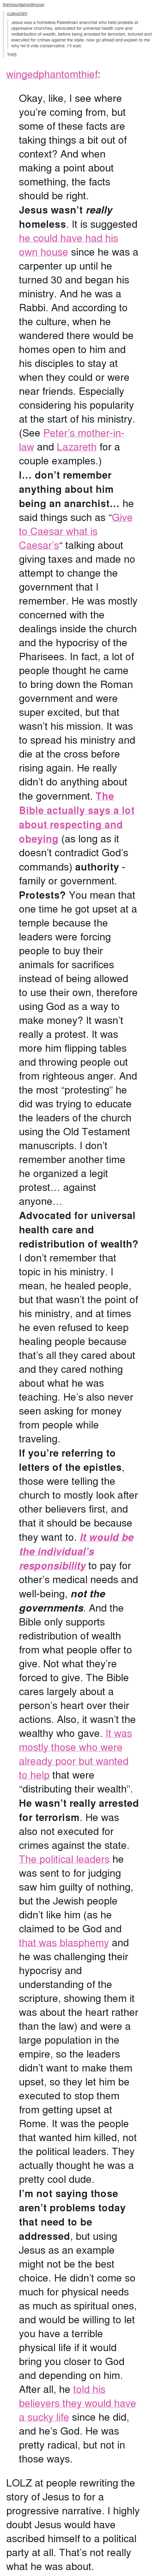 """flipping tables: themountainwillmove:  cutevictim  Jesus was a homeless Palestinian anarchist who held protests at  oppressive churches, advocated for universal health care and  redistribution of wealth, before being arrested for terrorism, tortured and  executed for crimes against the state, now go ahead and explain to me  why he'd vote conservative. l'll wait.  THIS <p><a class=""""tumblr_blog"""" href=""""http://wingedphantomthief.tumblr.com/post/87755317014/okay-like-i-see-where-youre-coming-from-but"""">wingedphantomthief</a>:</p> <blockquote> <p>Okay, like, I see where you're coming from, but some of these facts are taking things a bit out of context? And when making a point about something, the facts should be right.</p> <p><strong>Jesus wasn't <em>really</em> homeless</strong>. It is suggested <a href=""""http://ntweblog.blogspot.com/2006/03/did-jesus-have-house-in-capernaum.html"""" title=""""Have an article"""">he could have had his own house</a> since he was a carpenter up until he turned 30 and began his ministry. And he was a Rabbi. And according to the culture, when he wandered there would be homes open to him and his disciples to stay at when they could or were near friends. Especially considering his popularity at the start of his ministry. (See<a href=""""http://www.biblegateway.com/passage/?search=matthew+8%3A14-15&amp;version=NIV"""" title=""""Matthew 8:14-15"""">Peter's mother-in-law</a>and<a href=""""http://www.biblegateway.com/passage/?search=John+11"""" title=""""John 11"""">Lazareth</a>for a couple examples.)</p> <p><strong>I… don't remember anything about him being an anarchist…</strong> he said things such as """"<a href=""""http://www.biblegateway.com/passage/?search=Mark+12%3A13-17&amp;version=NIV"""" title=""""Mark 12:13-17"""">Give to Caesar what is Caesar's</a>&ldquo; talking about giving taxes and made no attempt to change the government that I remember. He was mostly concerned with the dealings inside the church and the hypocrisy of the Pharisees. In fact, a lot of people thought he came to brin"""